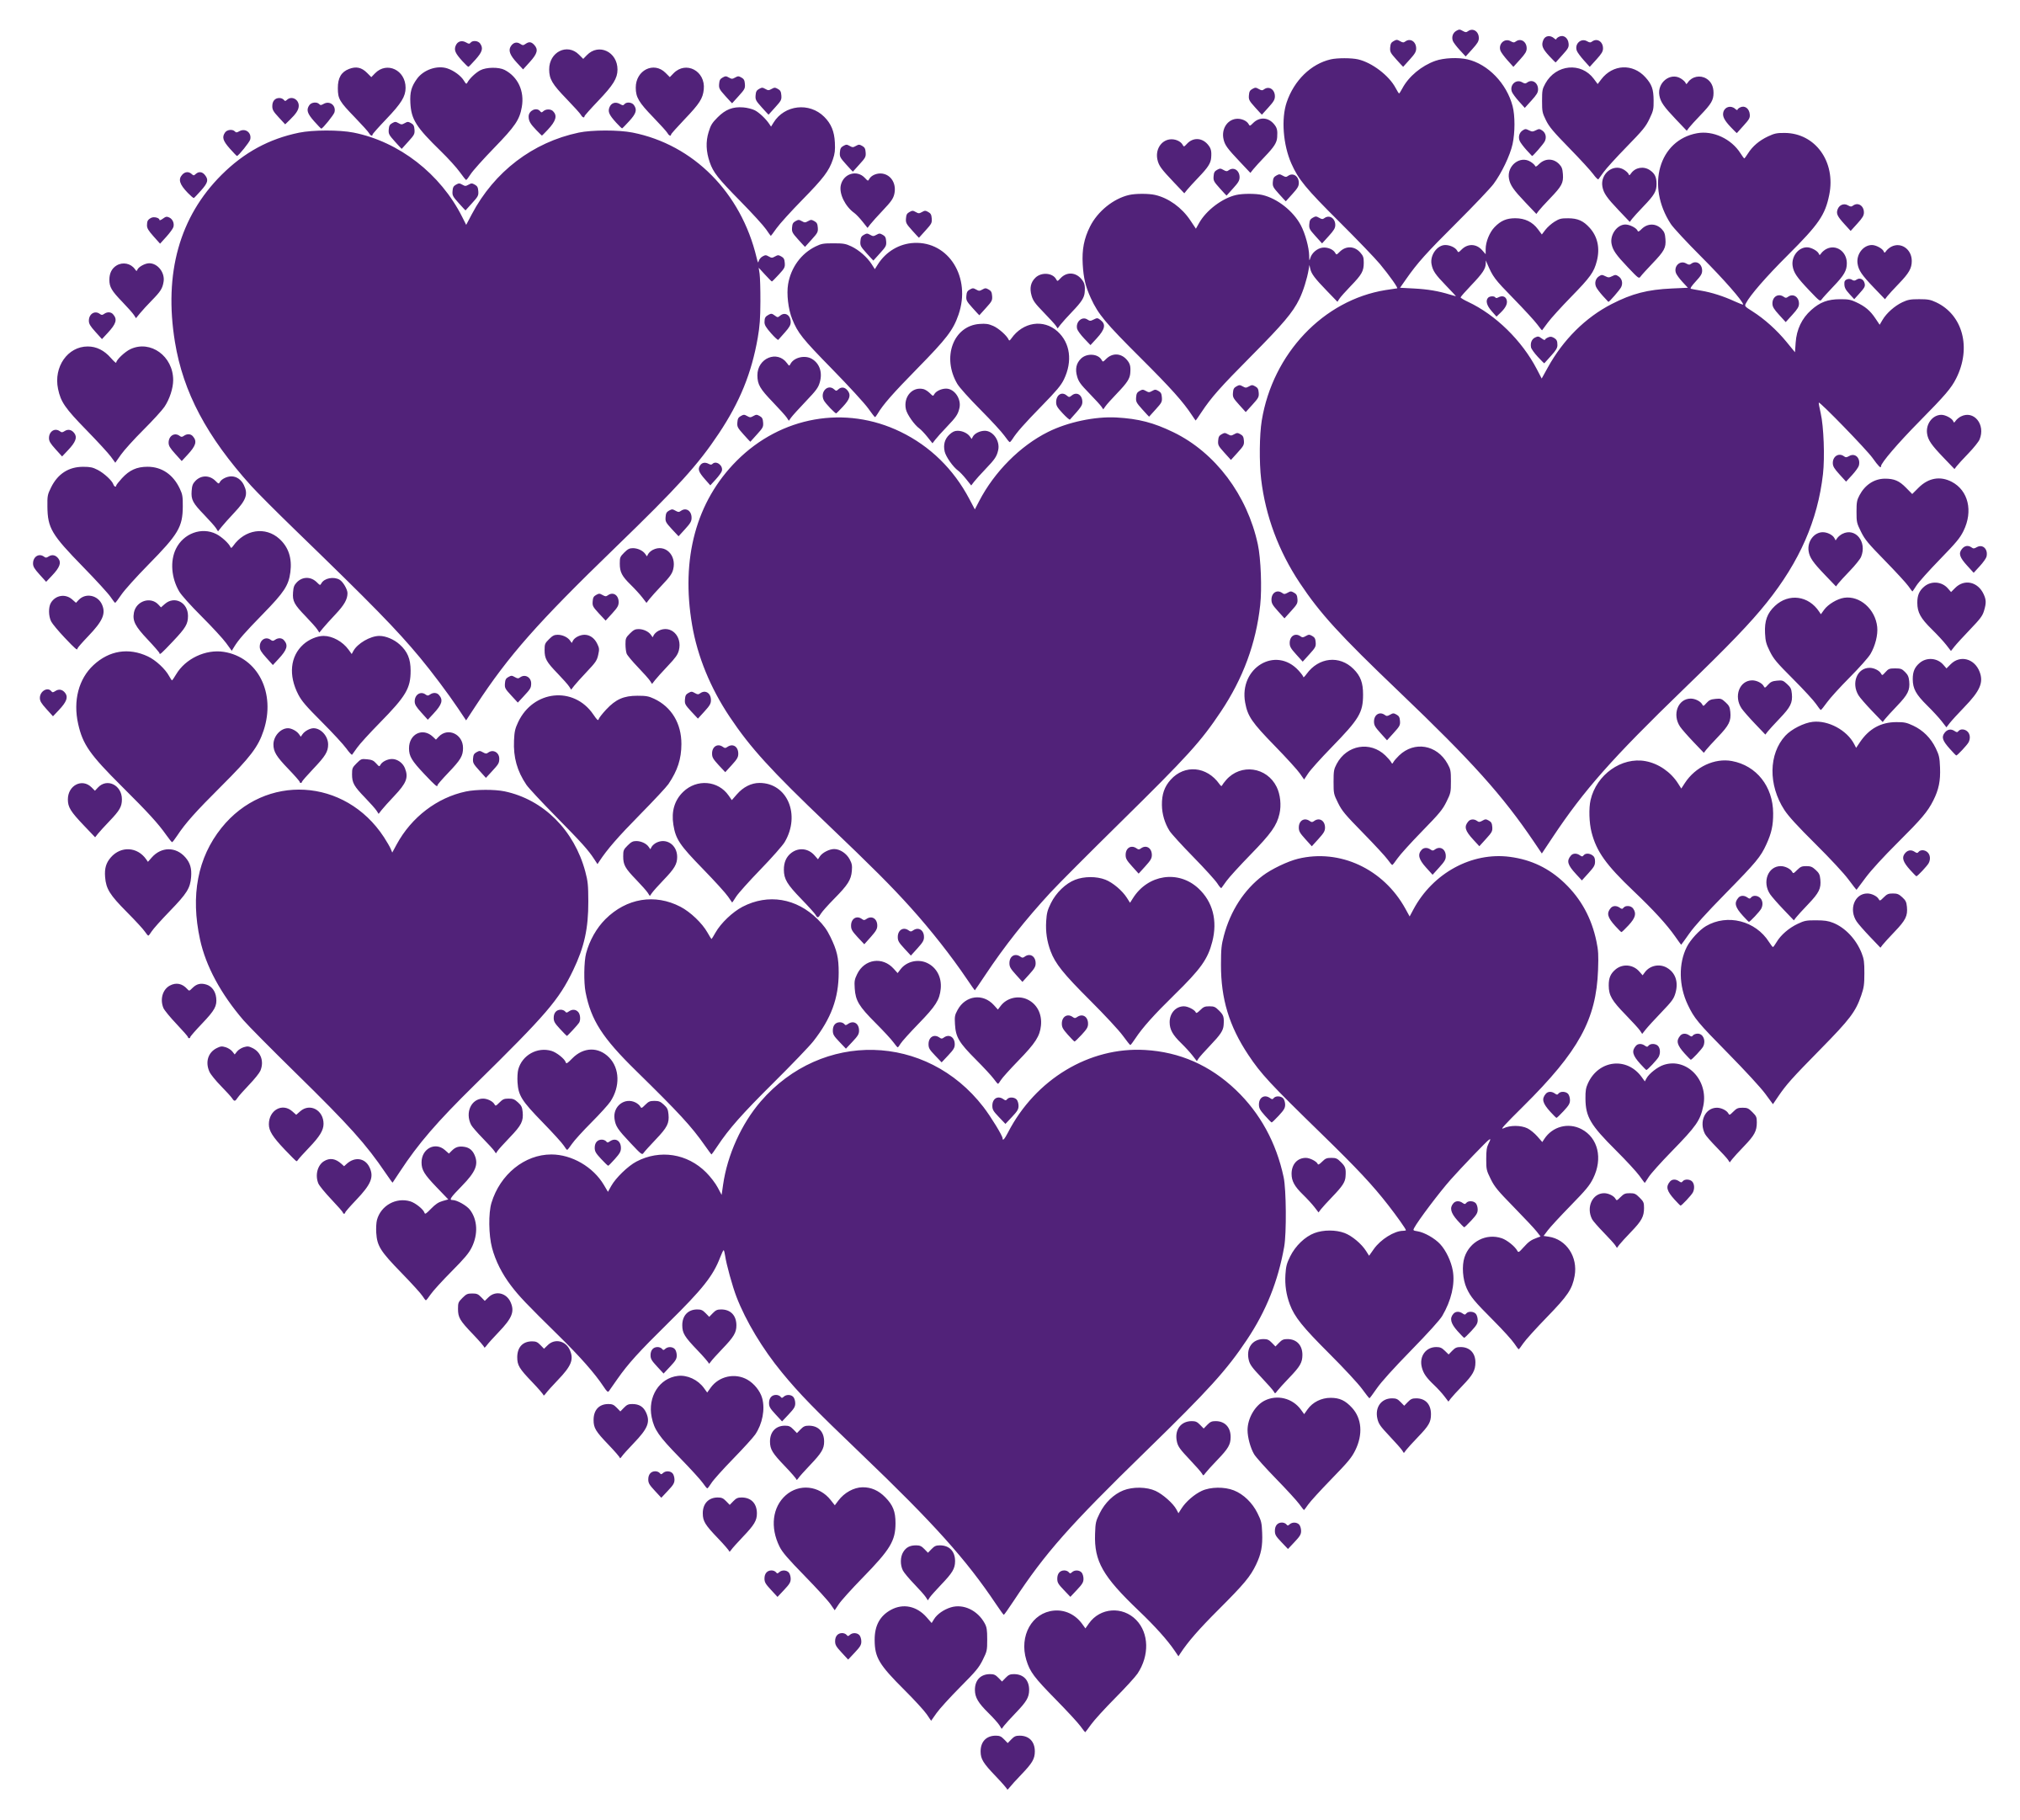 Heart purple clipart graphic royalty free download Clipart - Hearts In Heart - Purple graphic royalty free download